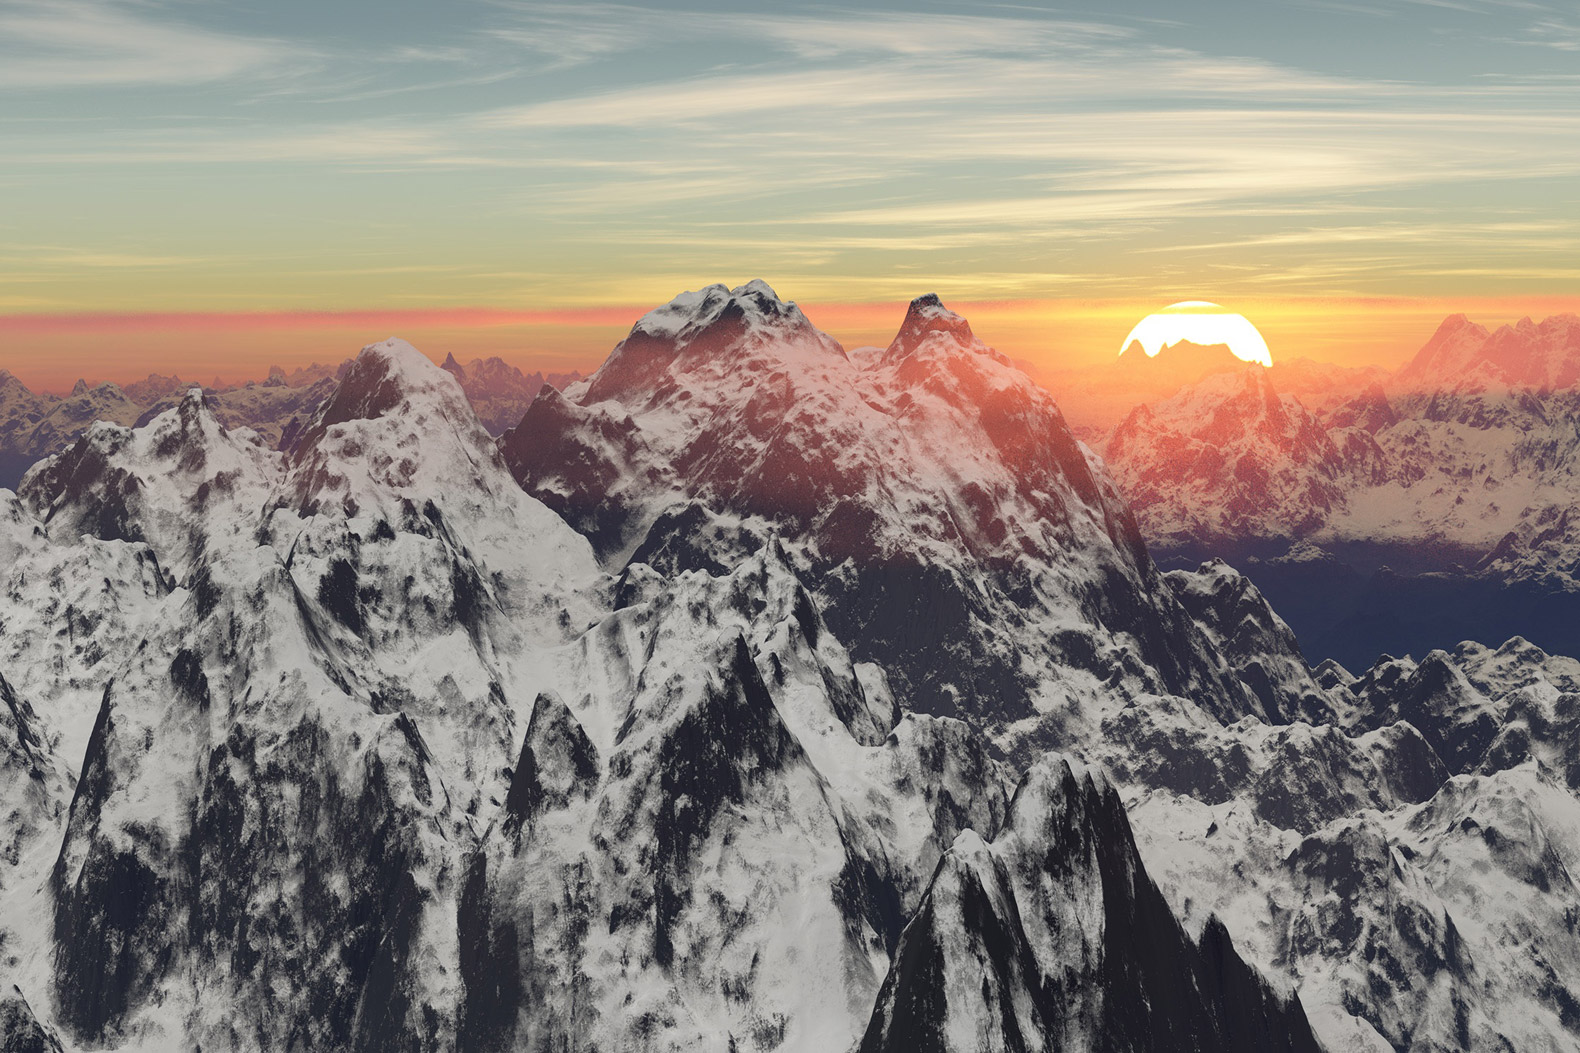 Global warming will melt over 1/3 of the Himalayan ice cap by 2100